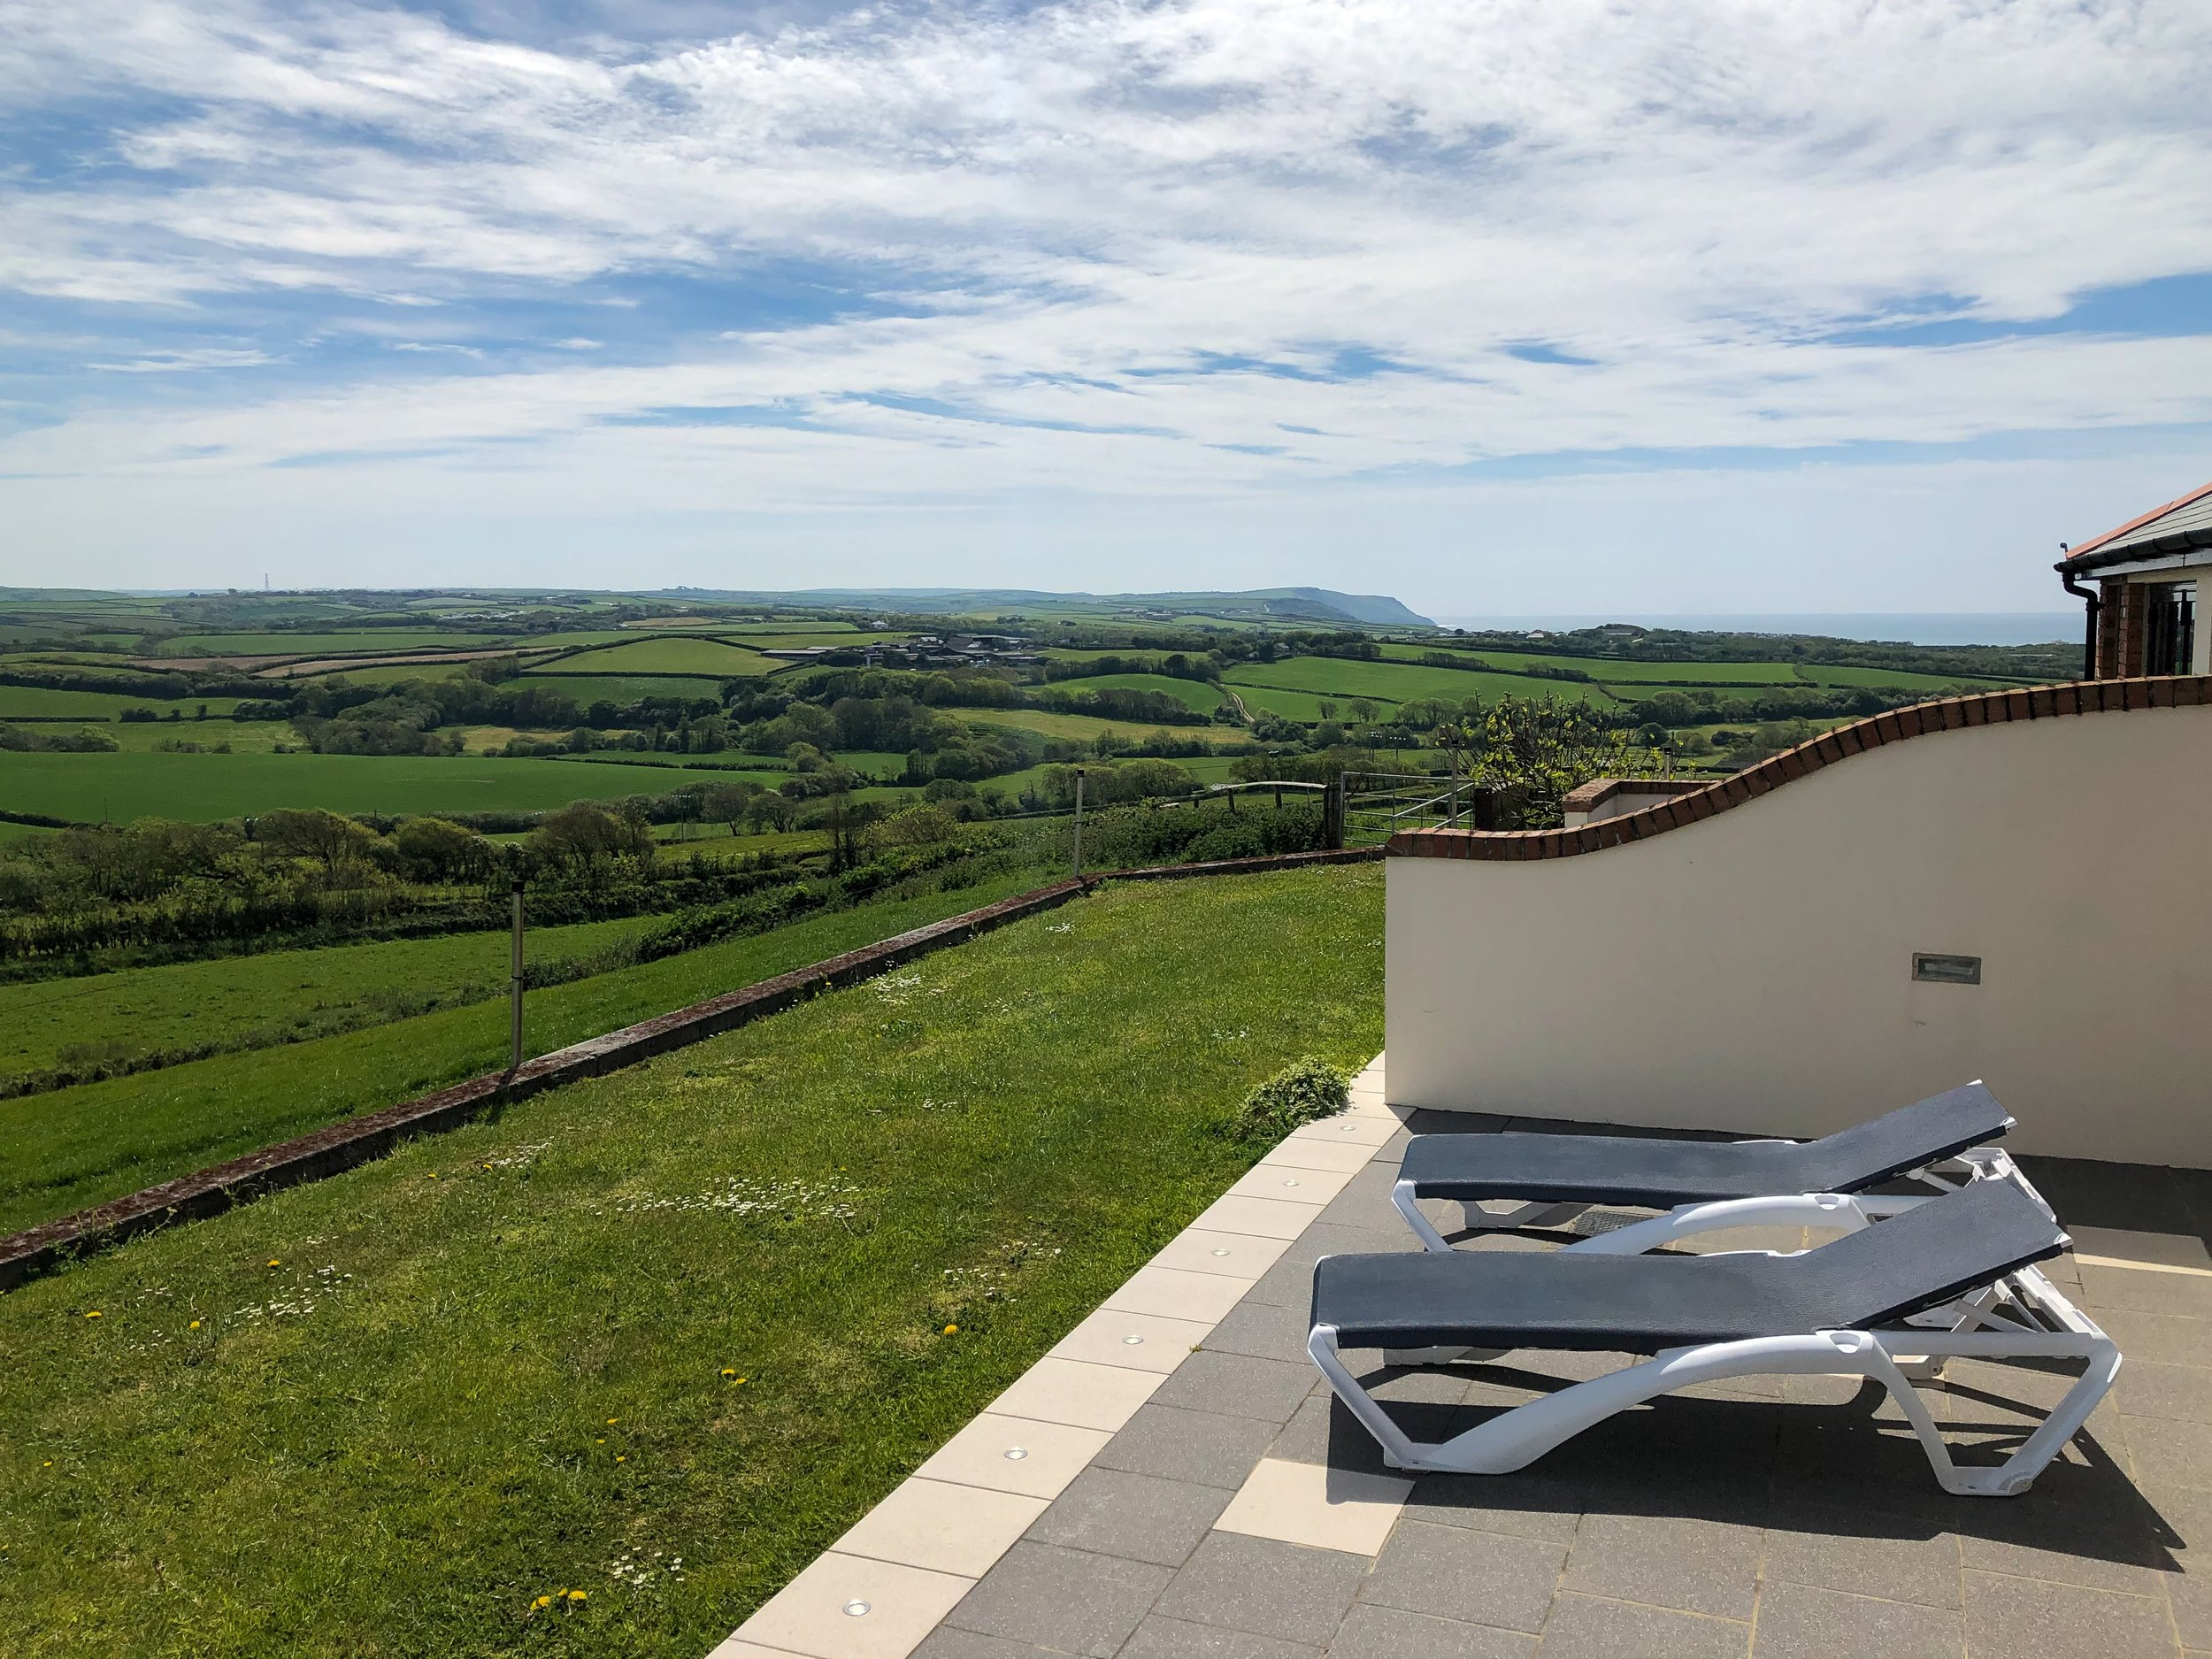 Superb countryside and sea views from the patio area of the Milky Way